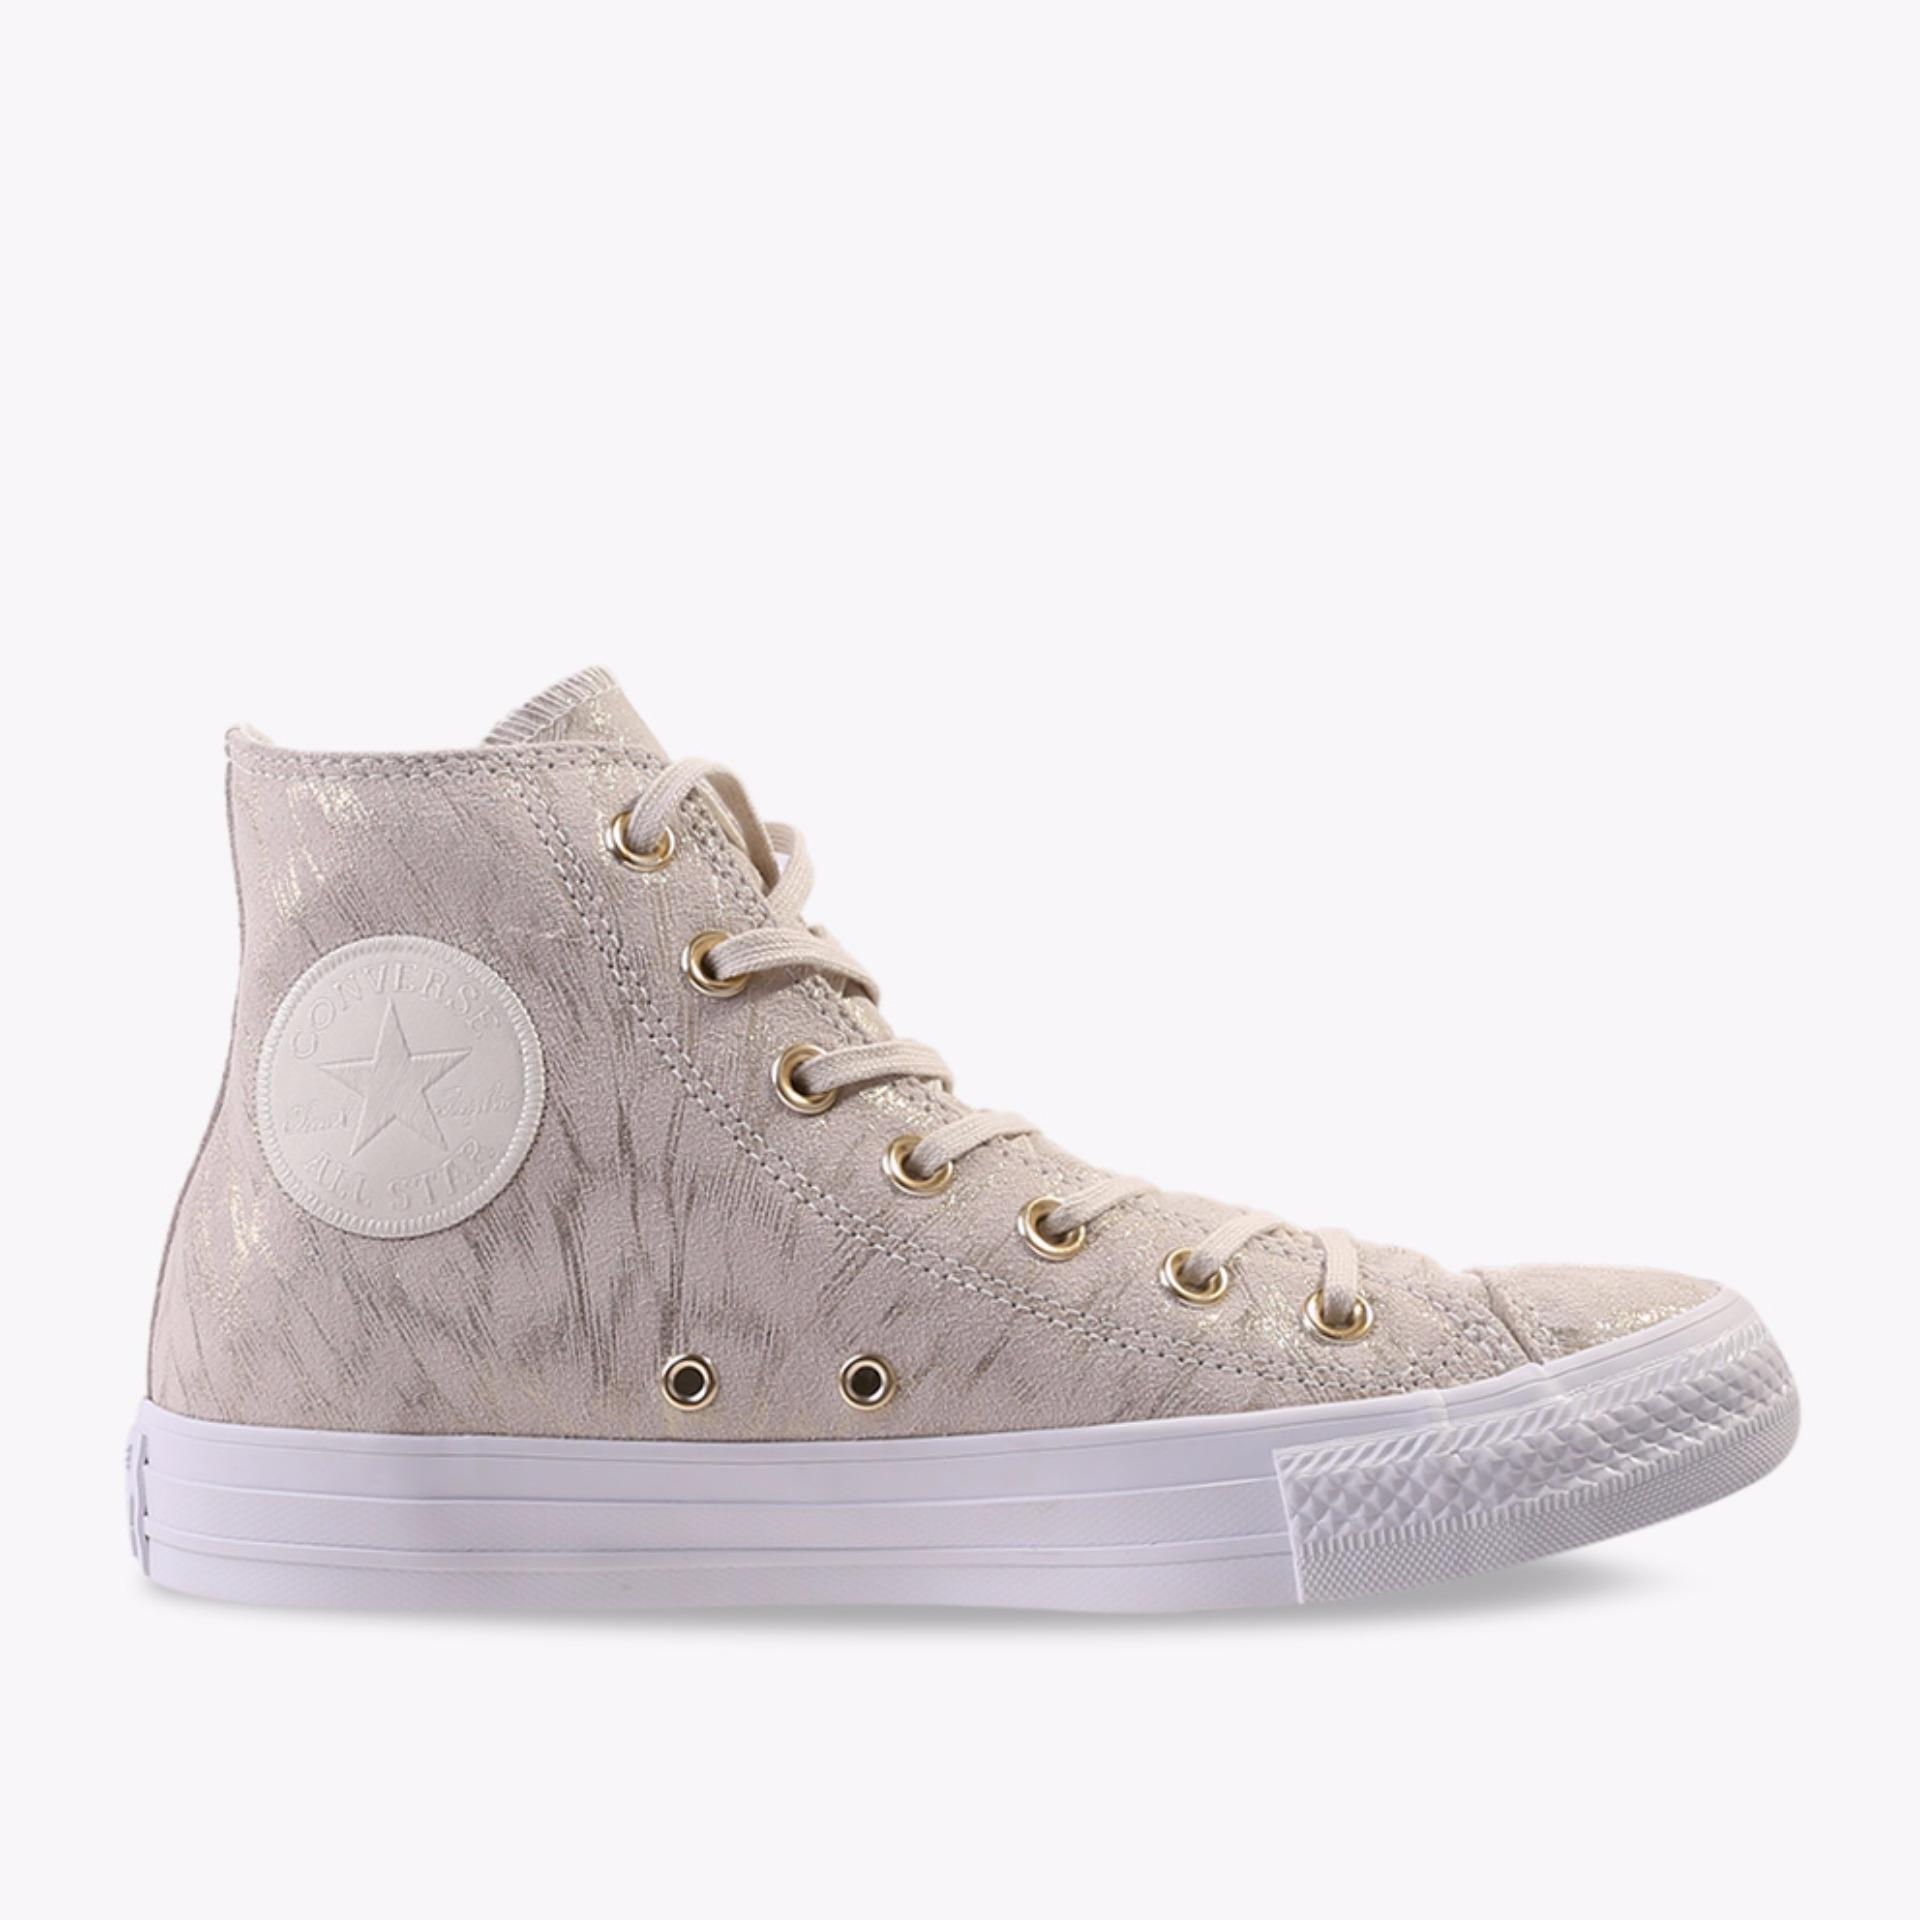 Converse Chuck Taylor All Star Shimmer Suede Hi Women's Sneakers Shoes - Putih